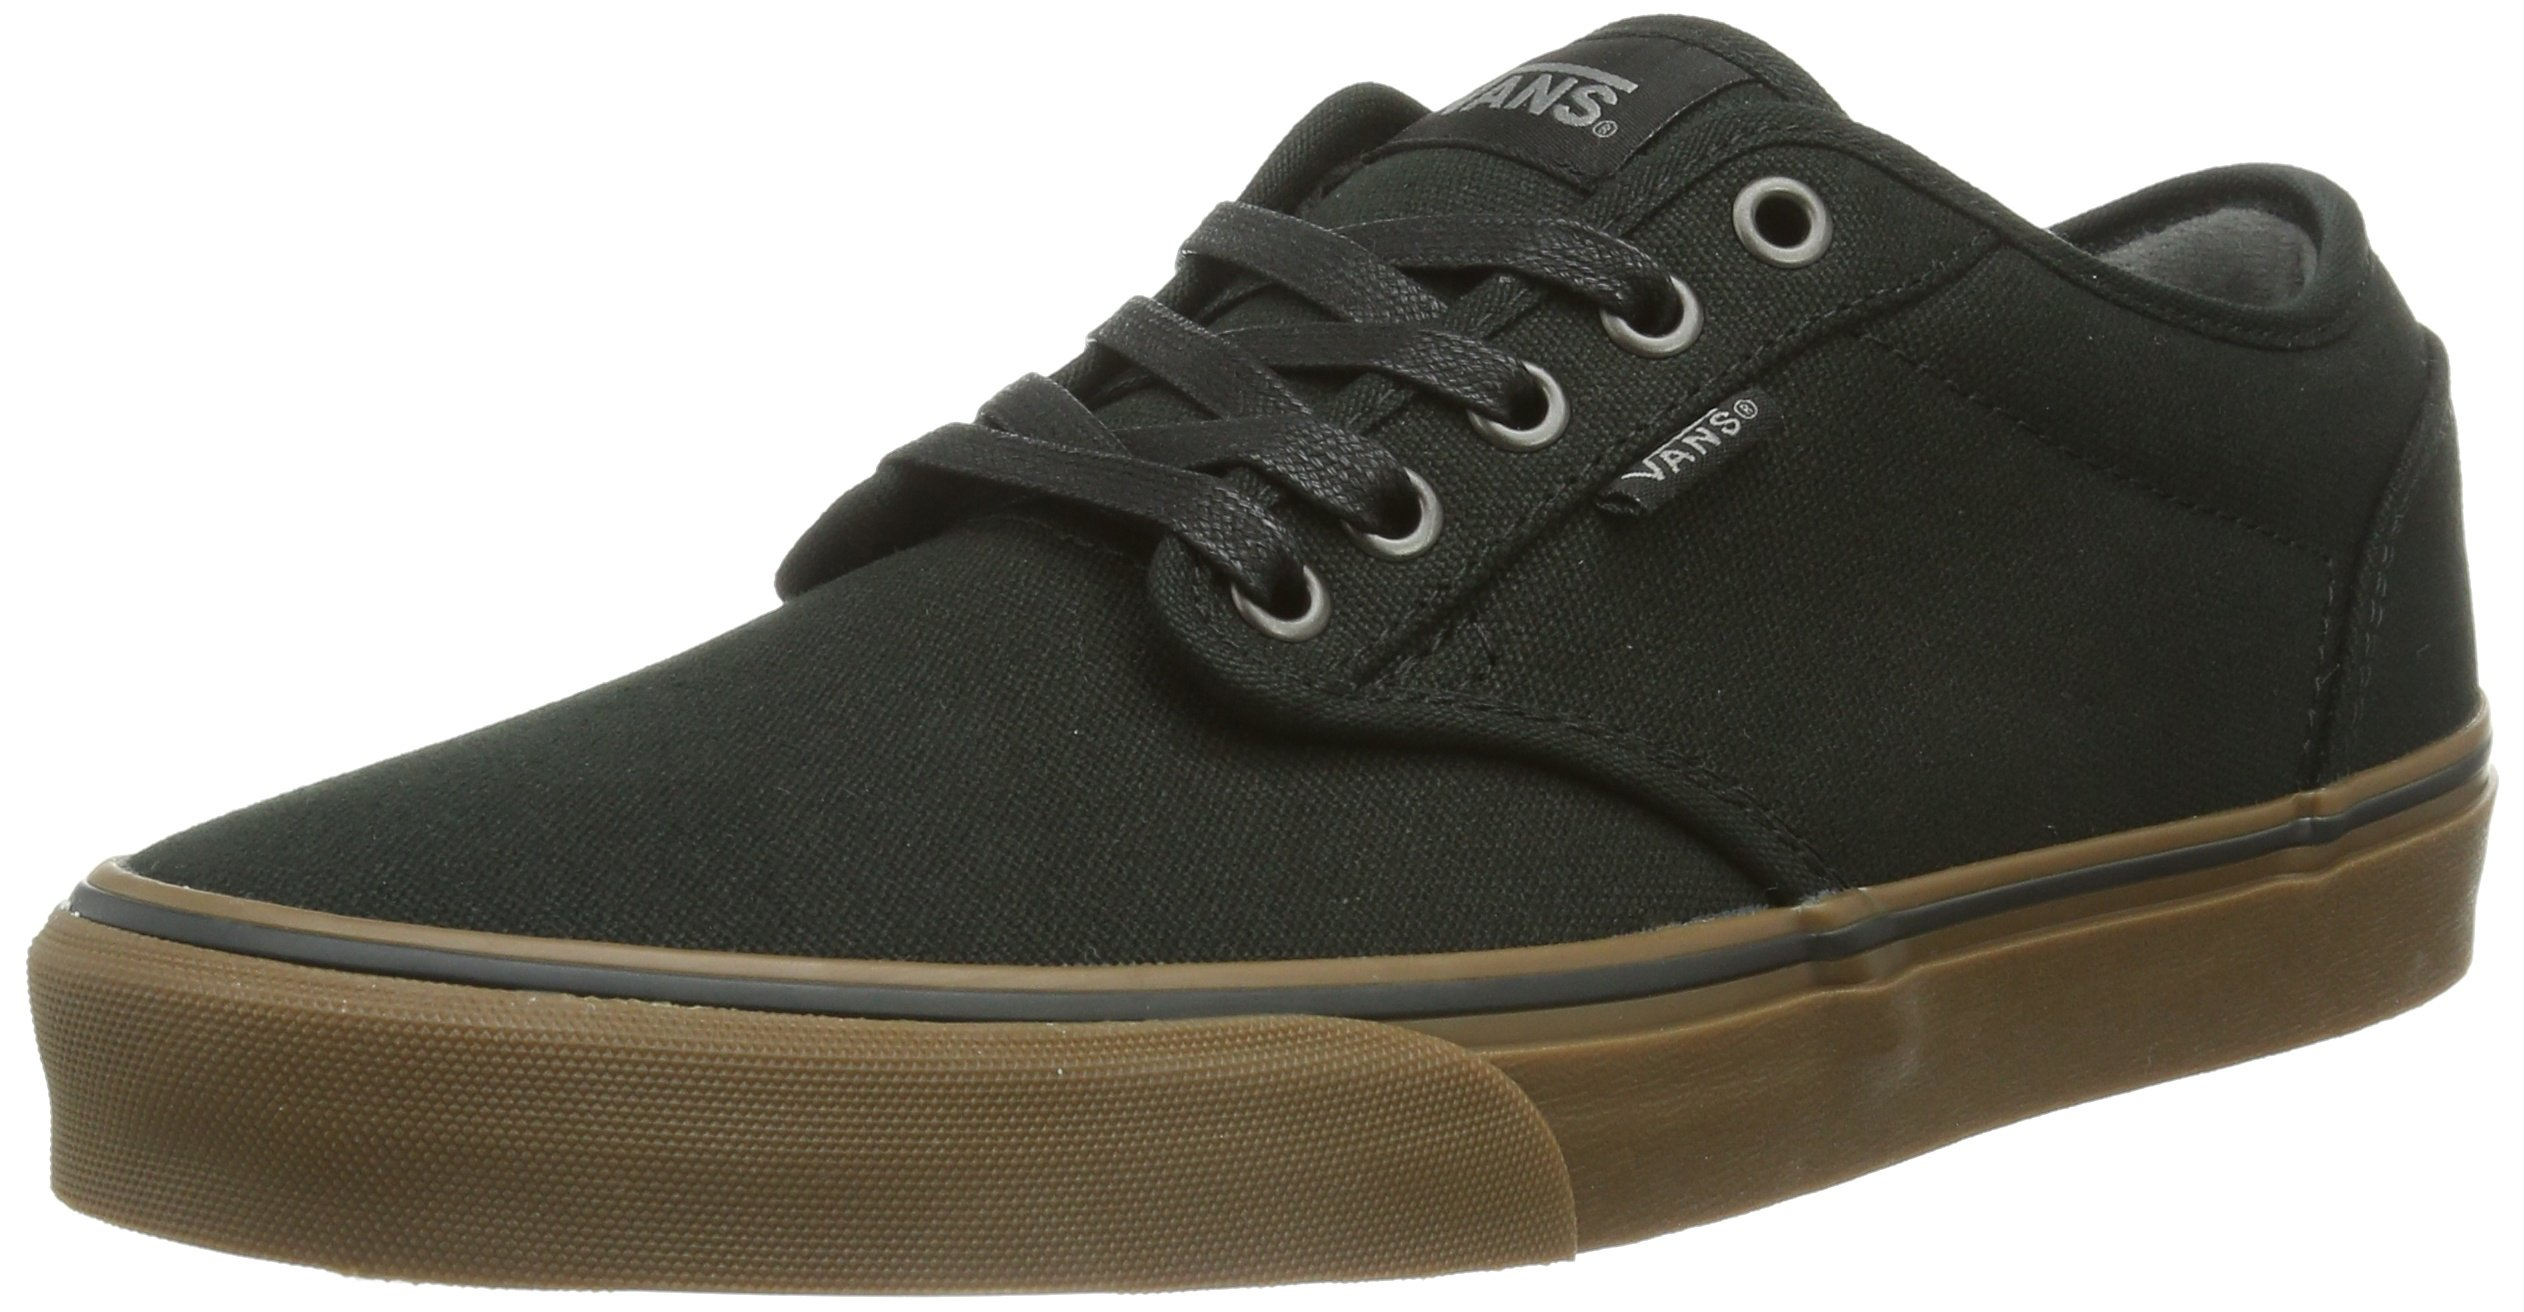 Galleon - VANS Mens Atwood Canvas Skate Shoes - Size  13 6a095d0621